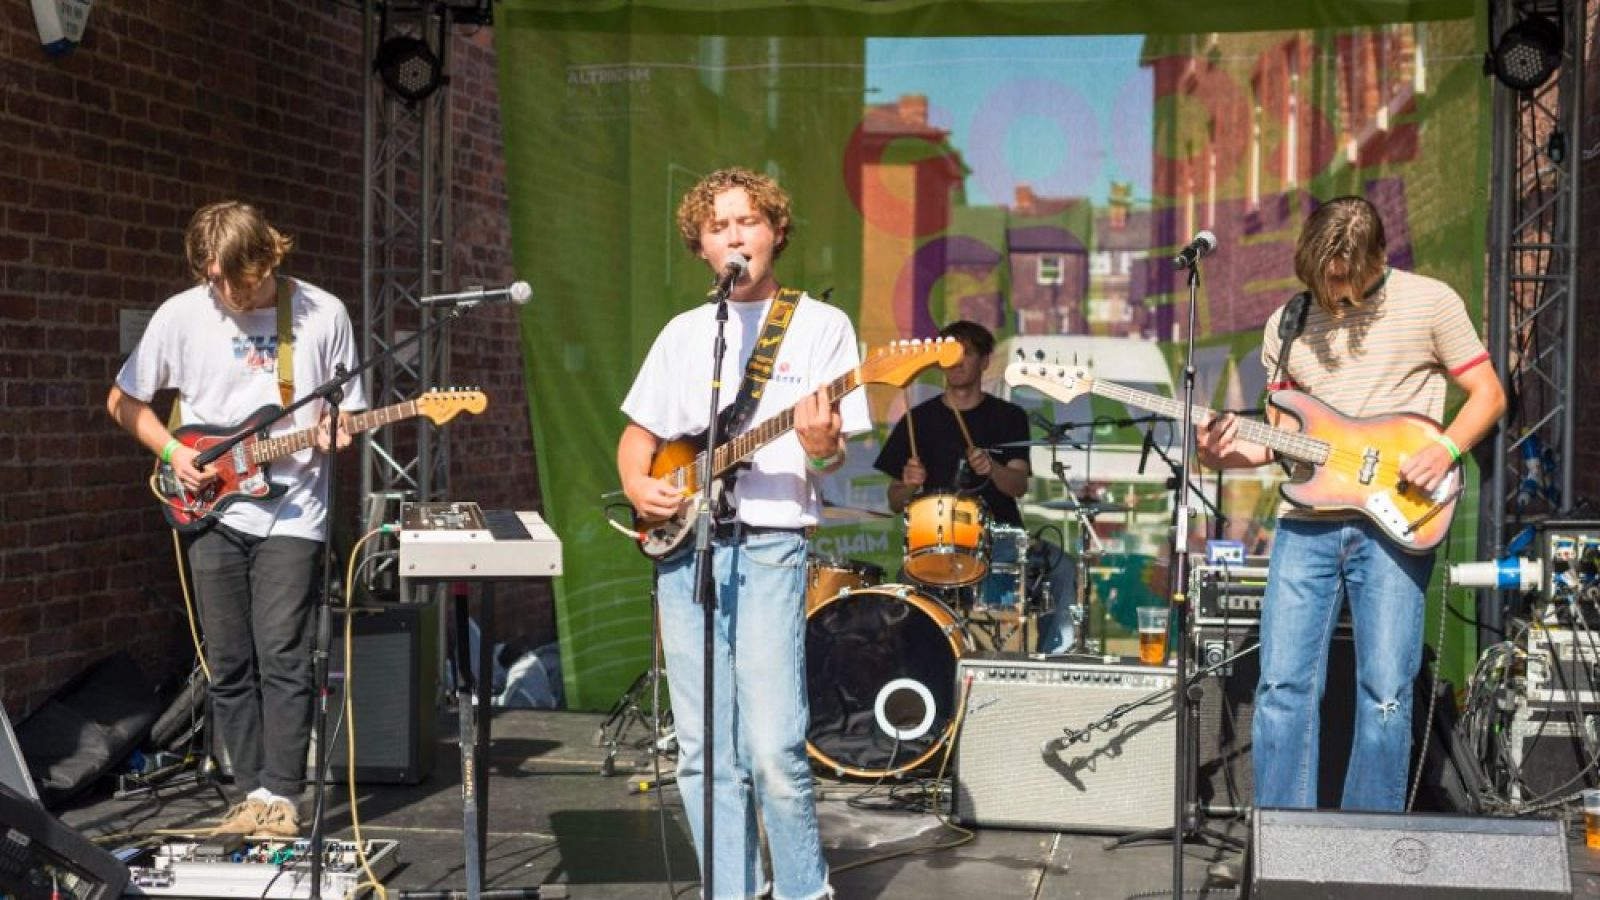 One of the many live bands who played Goose Green and other music venues across the town over the weekend